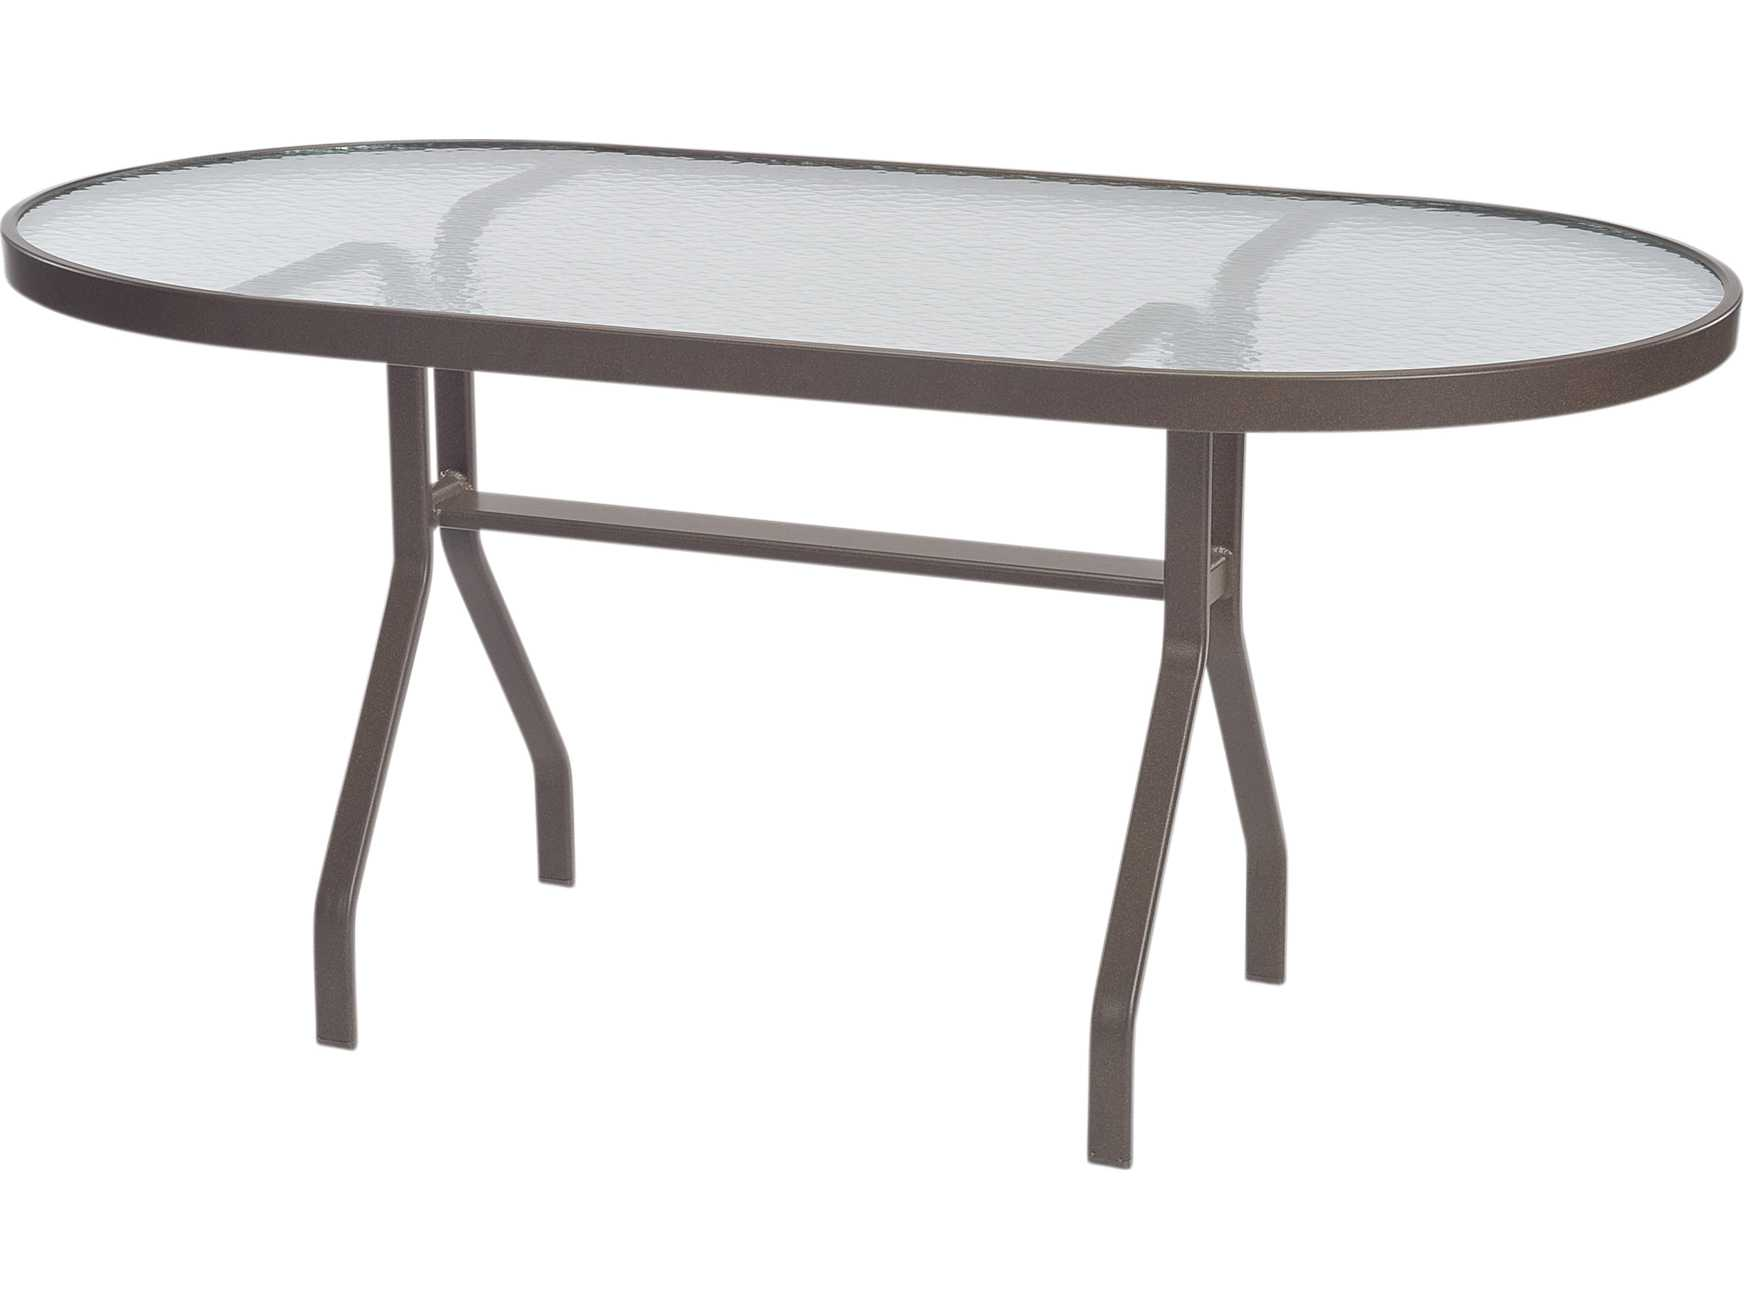 Windward Design Group Glass Top Aluminum 60 x 30 Oval Dining Table